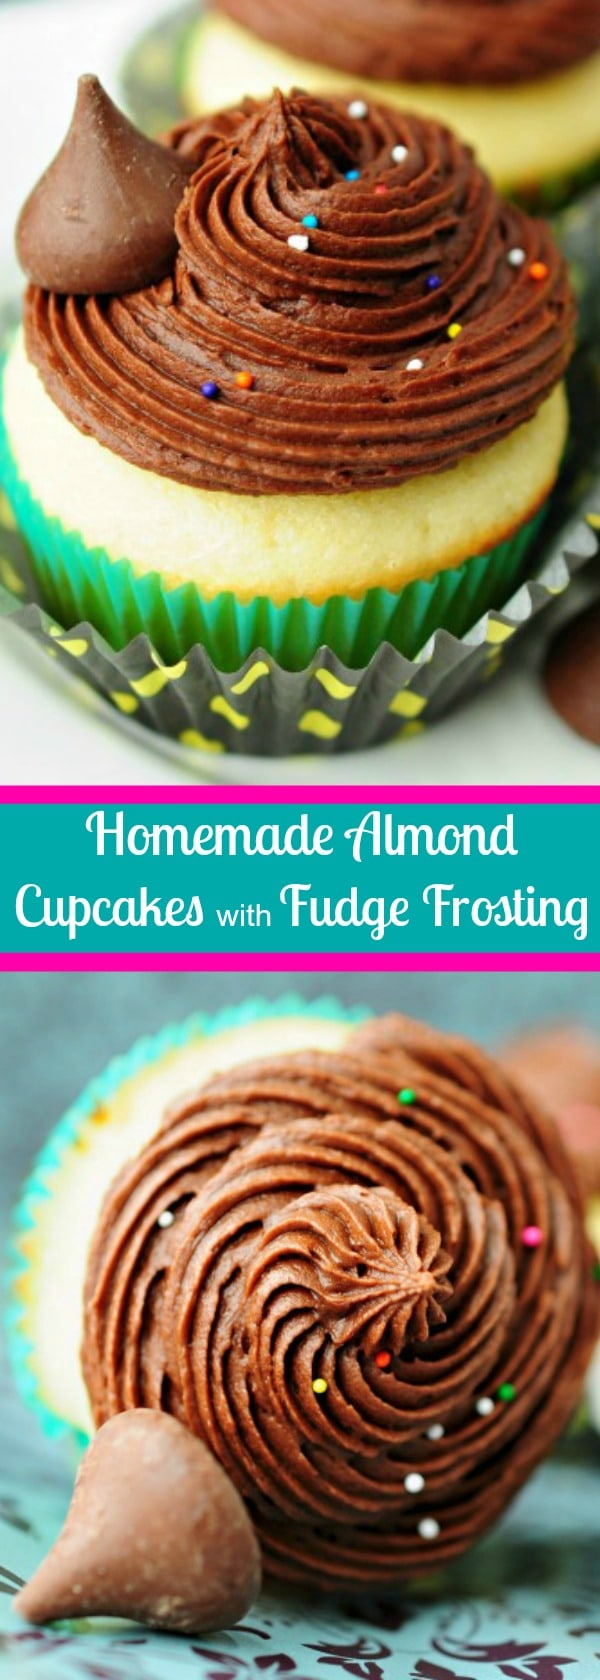 These easy homemade Almond Fudge Cupcakes are fluffy and buttery with a delightful almond flavor. The almond fudge frosting is is smooth, rich and creamy! #cupcakes #almond #chocolate